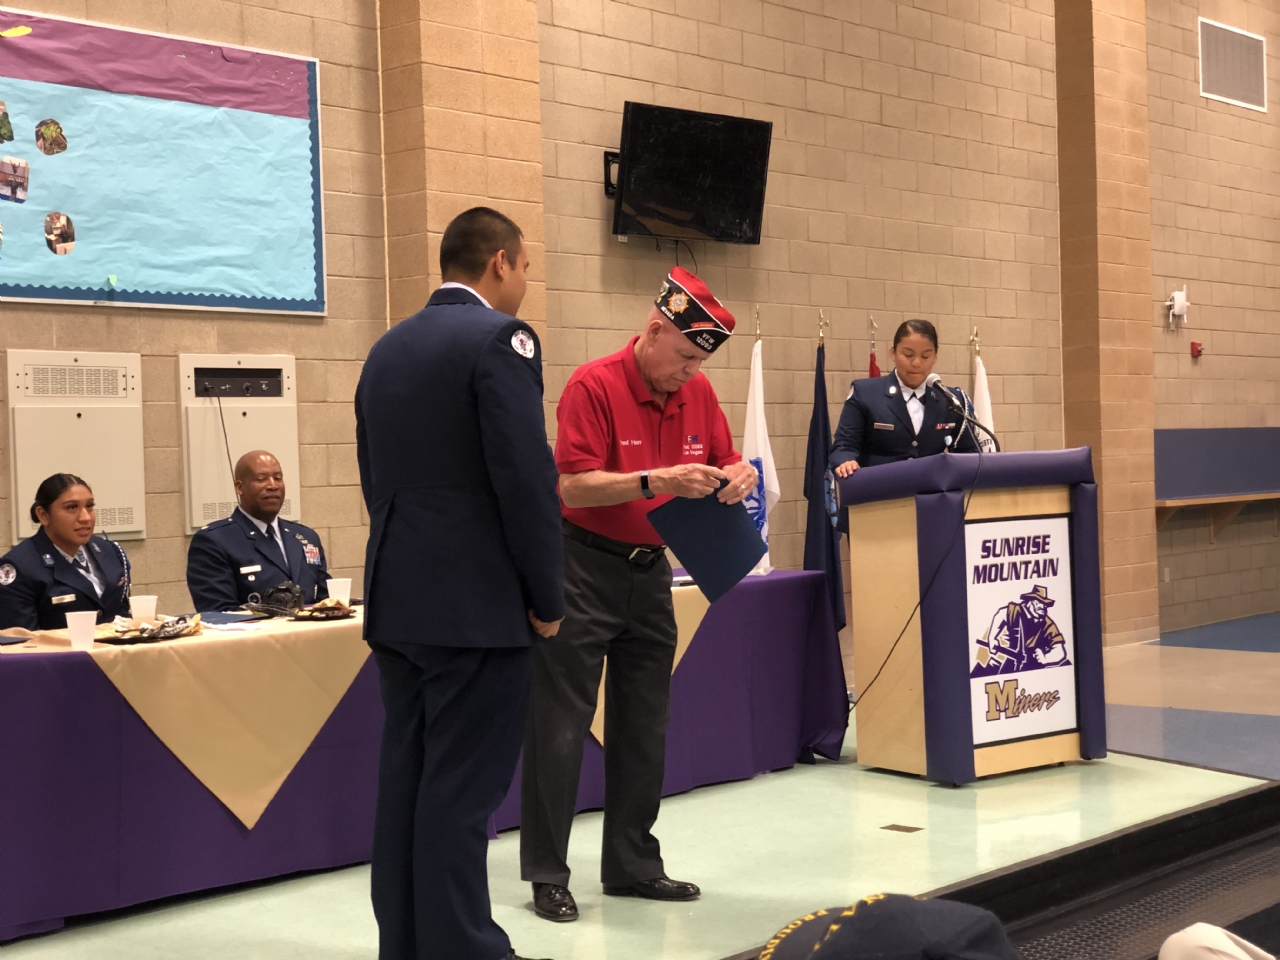 Past District Commander Fred Herr presents JROTC Cadet of the Year Jesus Castillo with the VFW JROTC Cadet of the Year award.